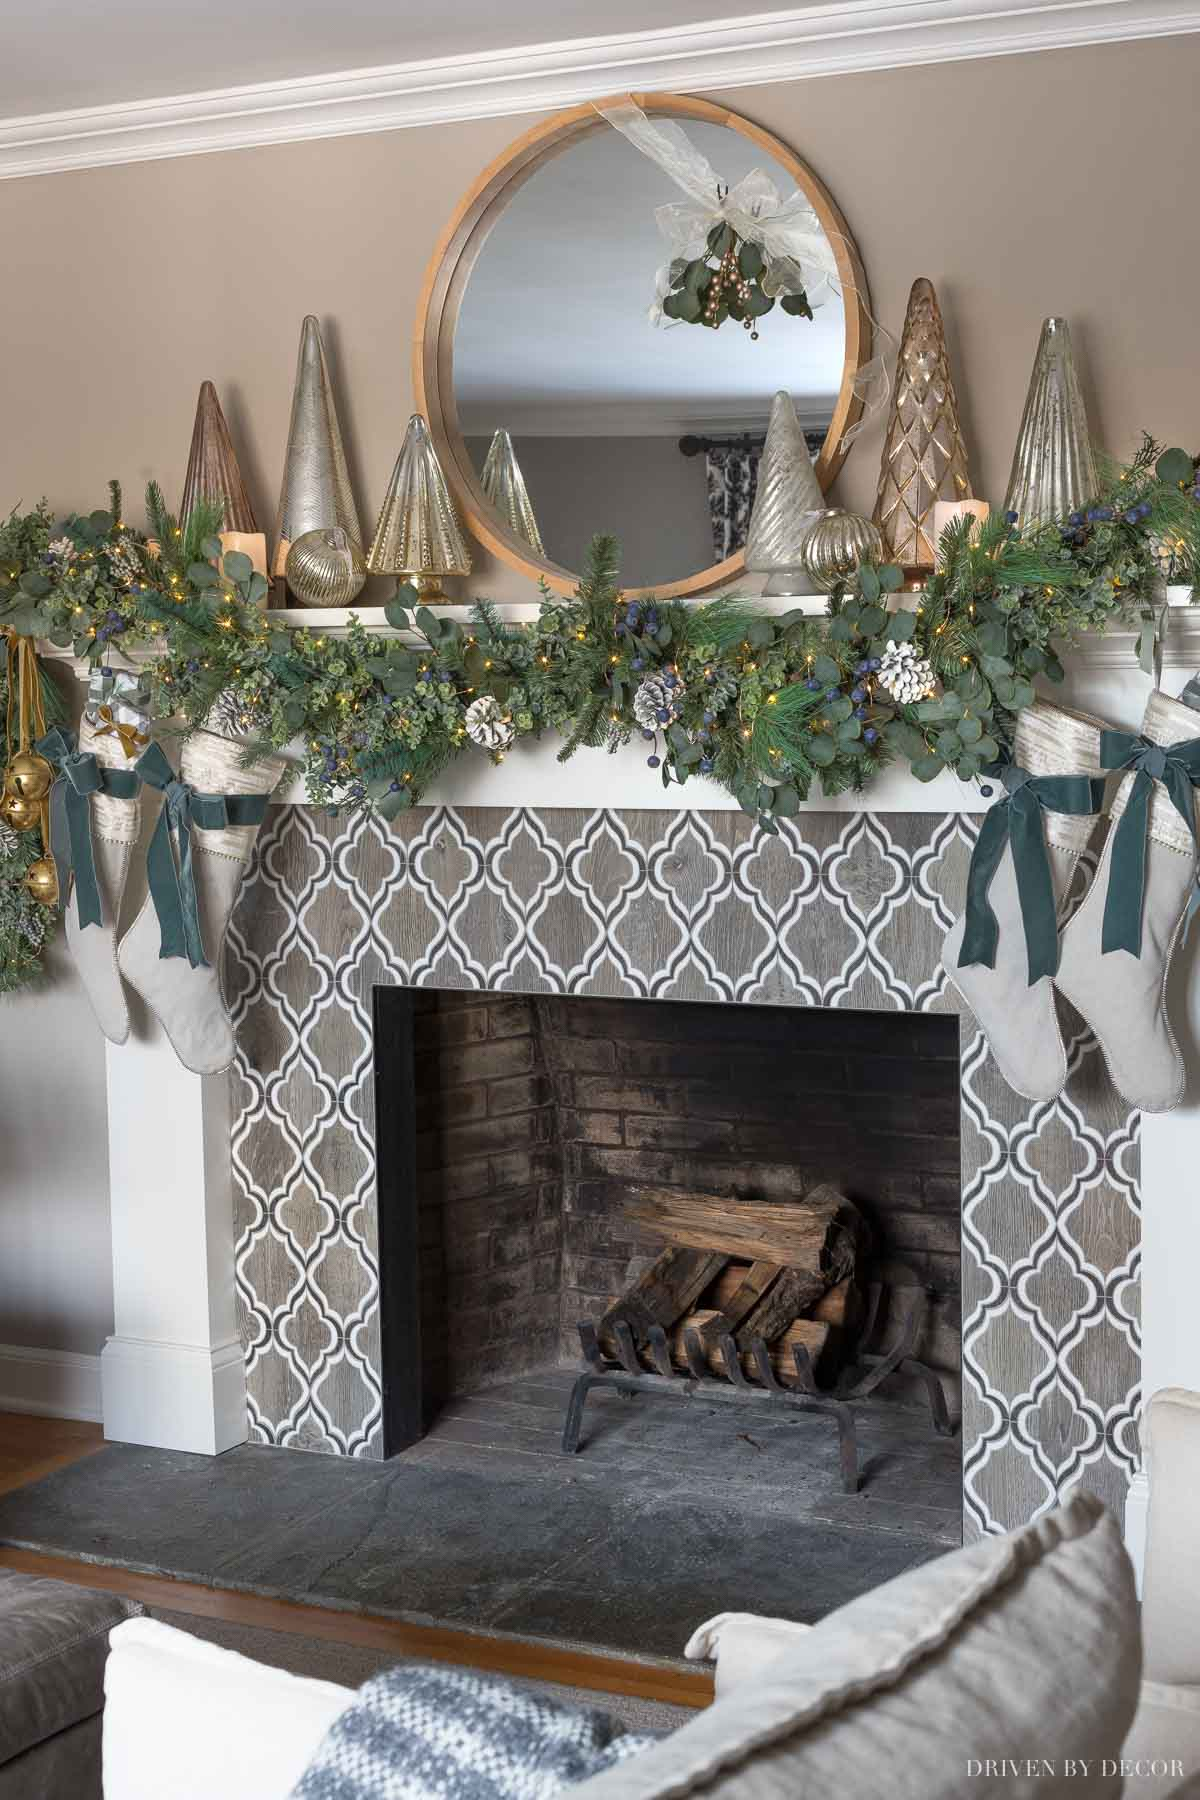 Our fireplace mantel at Christmas with greenery, mercury Christmas trees, glowing faux candles, and twinkle lights